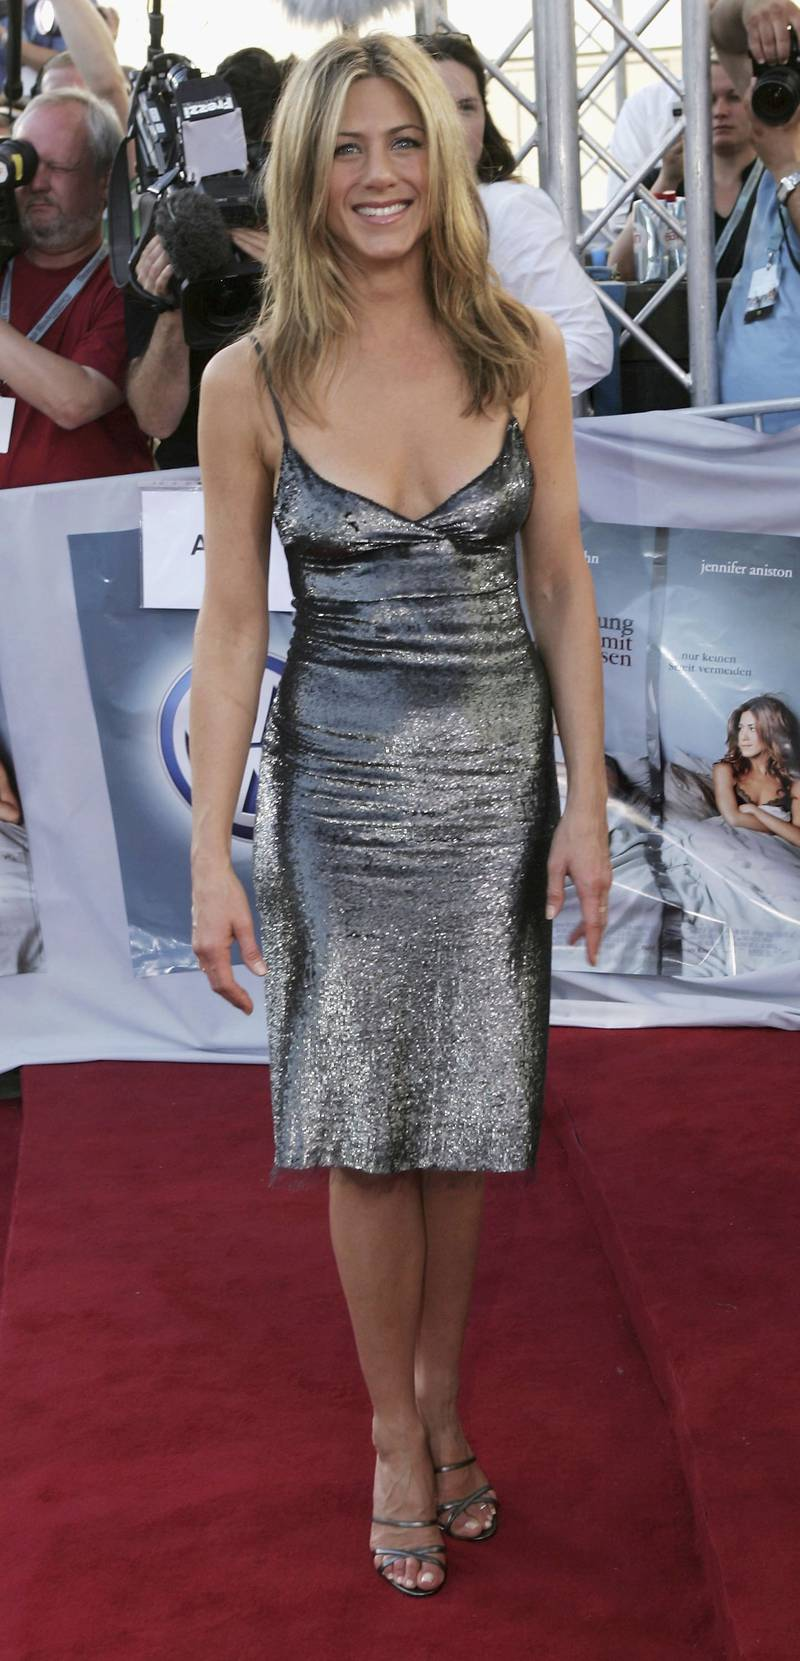 """HAMBURG, GERMANY - JUNE 12:  Actress Jennifer Aniston arrives for a special screening of """"The Break-Up"""" on June 12, 2006 in Hamburg, Germany.  (Photo by Sean Gallup/Getty Images)"""